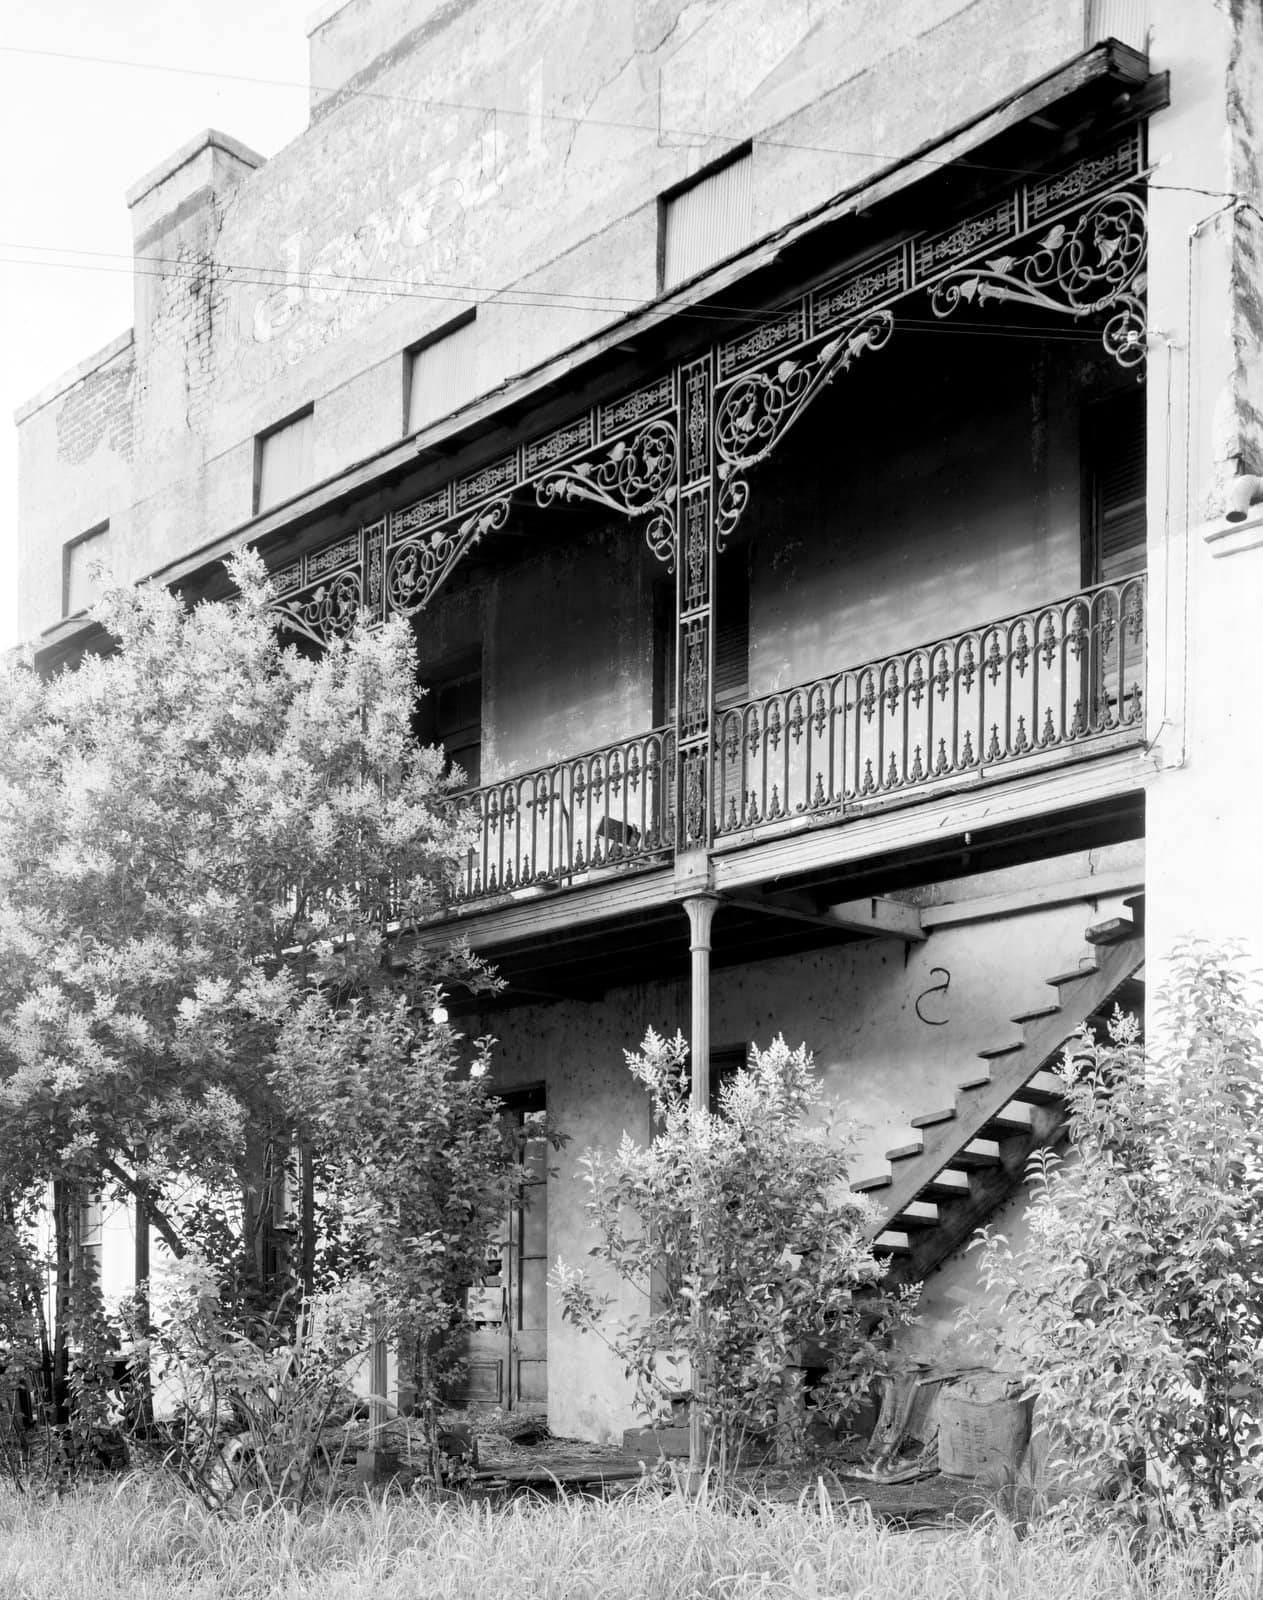 Old Southern wrought-iron balcony at St. James' Hotel, Selma, Alabama - 1939